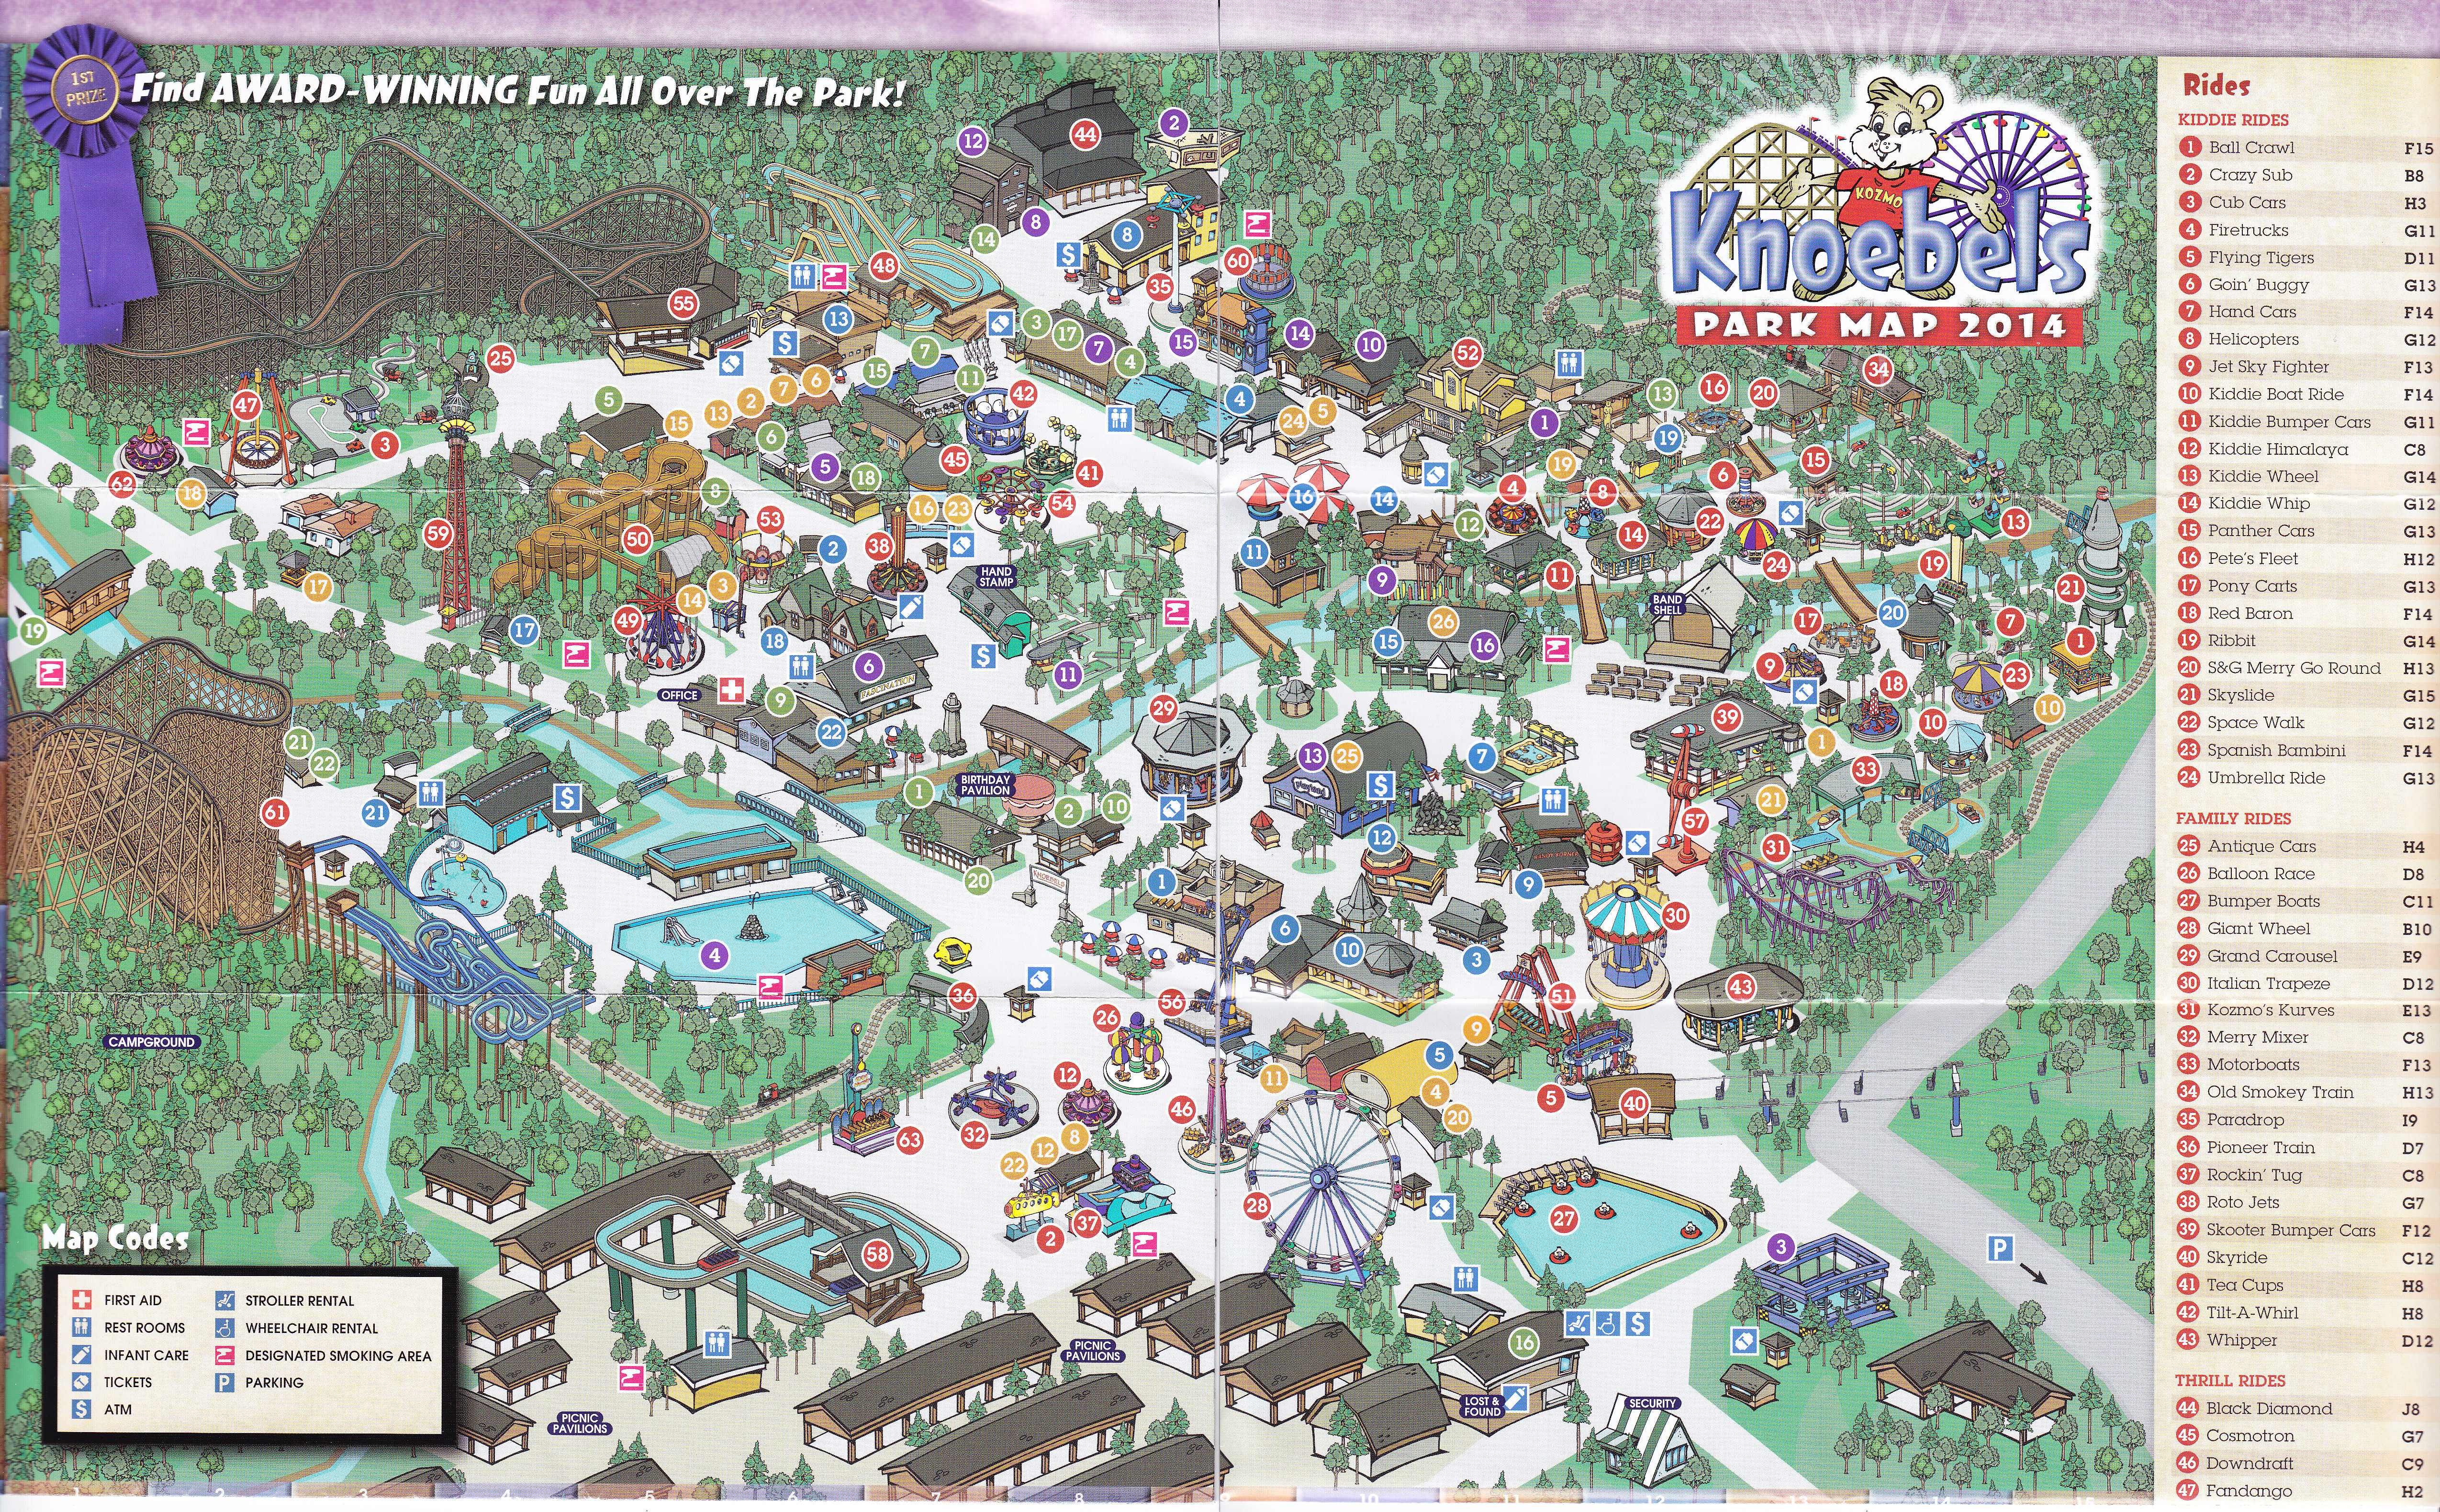 Knoebels Amut Park & Resort - 2014 Park Map on six flags over georgia park map 2013, kennywood park map 2013, holiday world park map 2013,